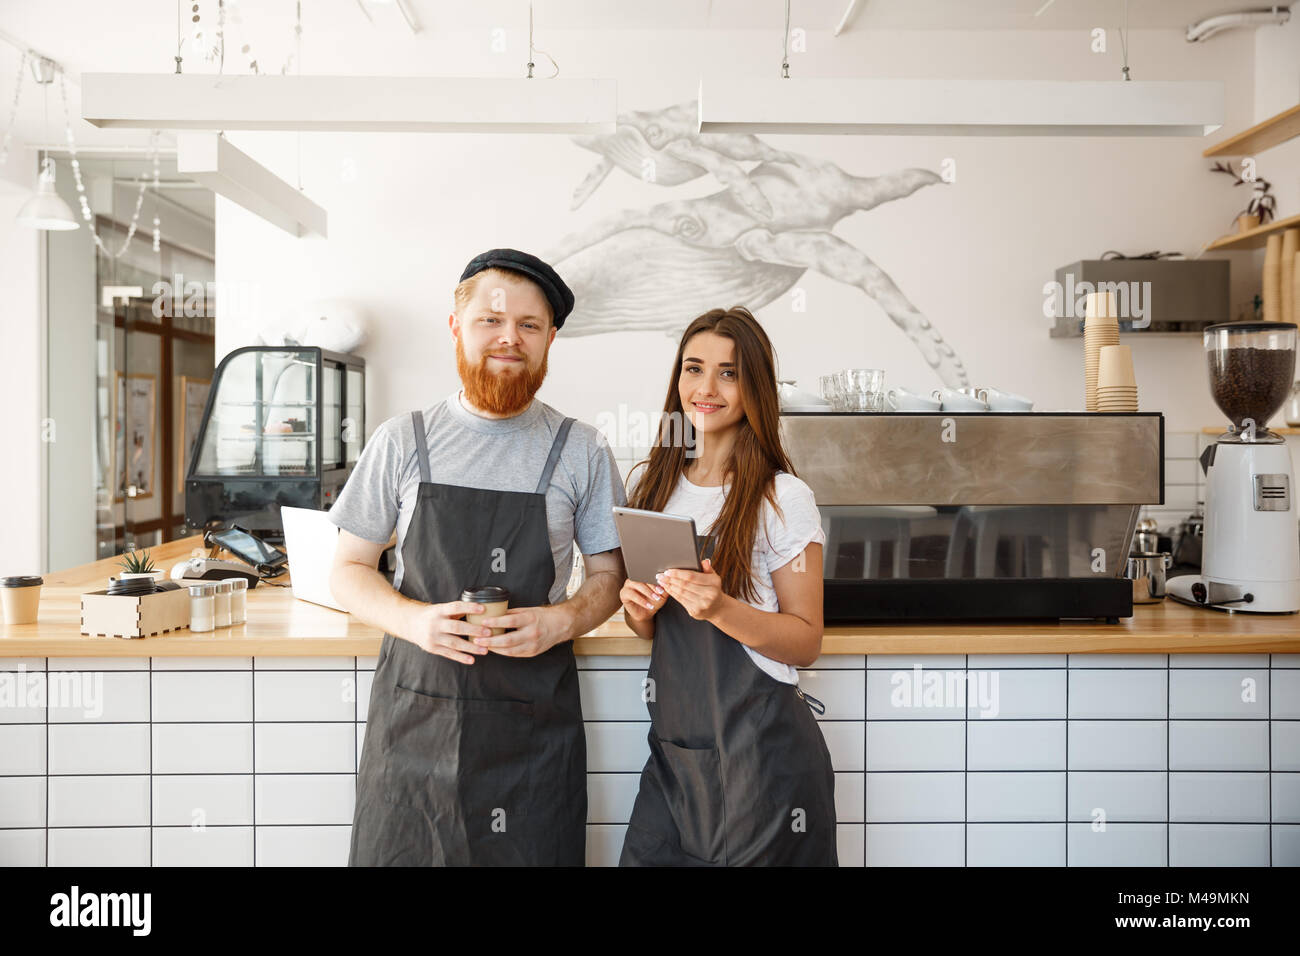 Coffee Business Concept - happy young bartender baristas ready to give service at modern coffee shop. - Stock Image